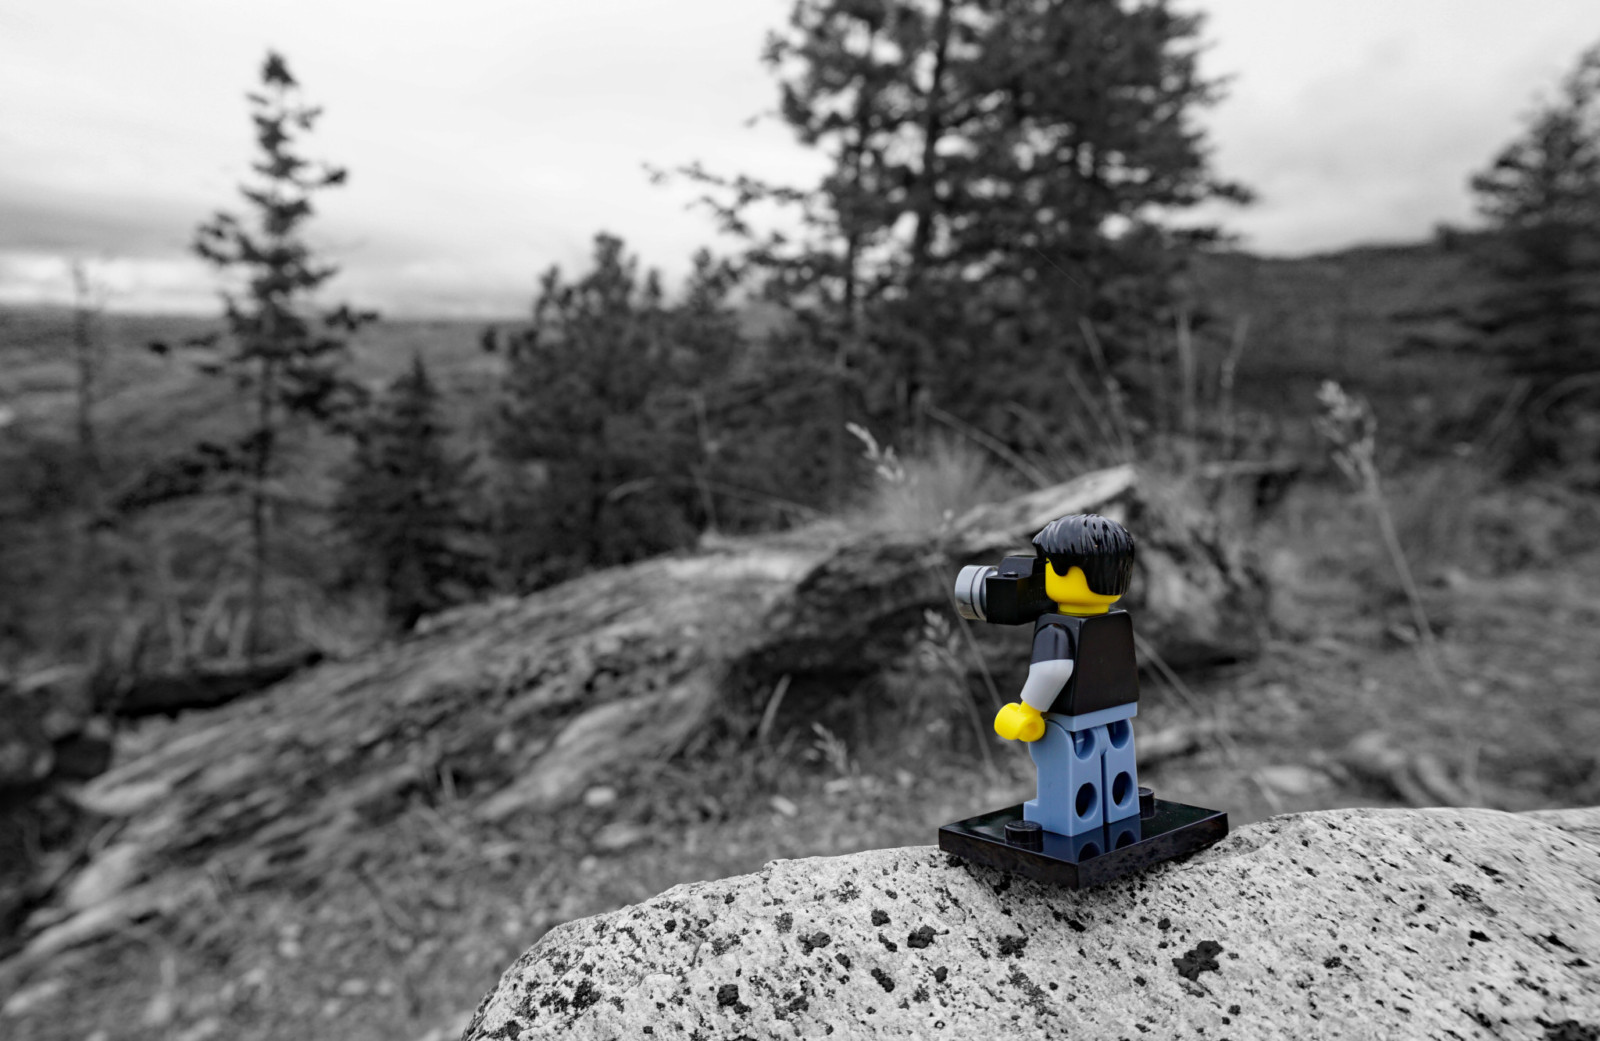 Lego Dave and the Hike